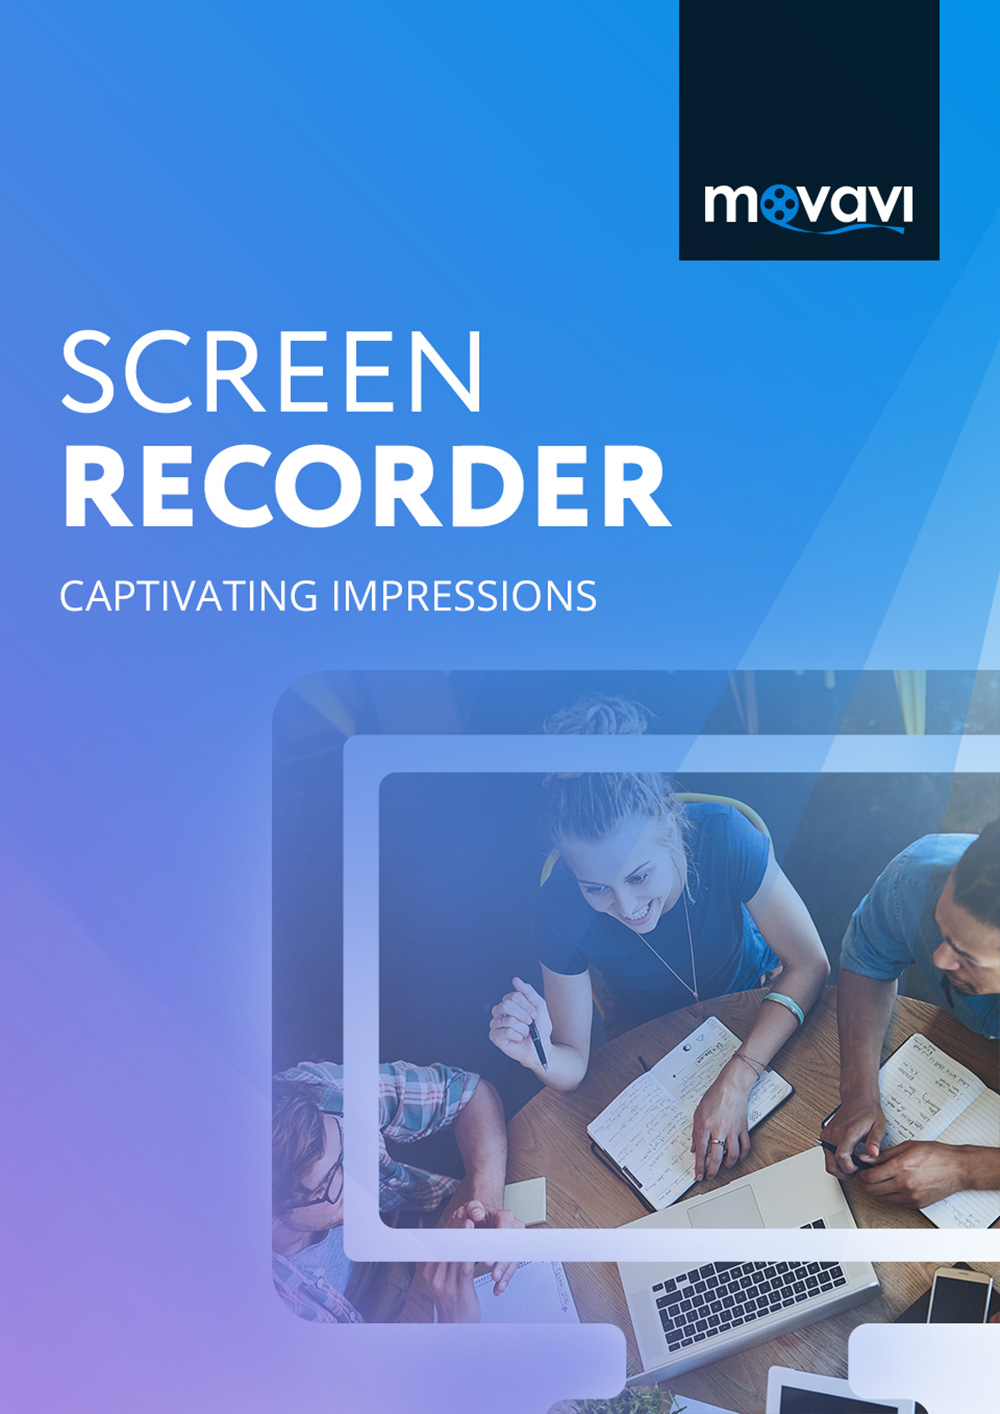 (Movavi Screen Recorder 9 Home Edition [Download])